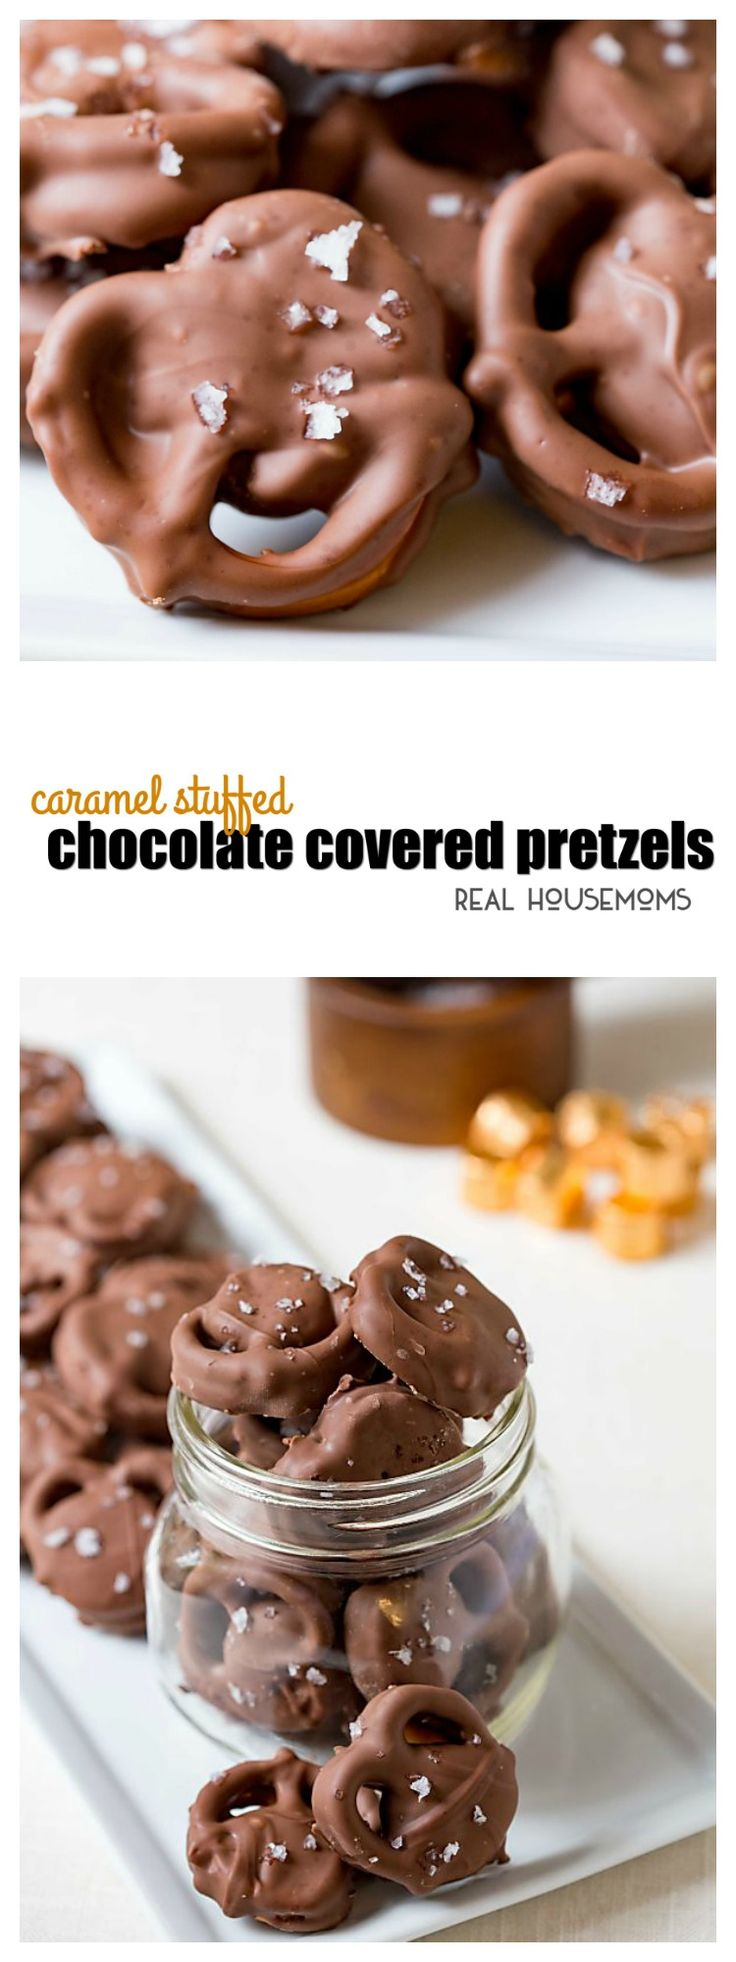 Caramel Stuffed Chocolate Covered Pretzels are a simple candy you can serve up as a Christmas treat or just for fun! Christmas candy or not they make everyone smile! via @realhousemoms